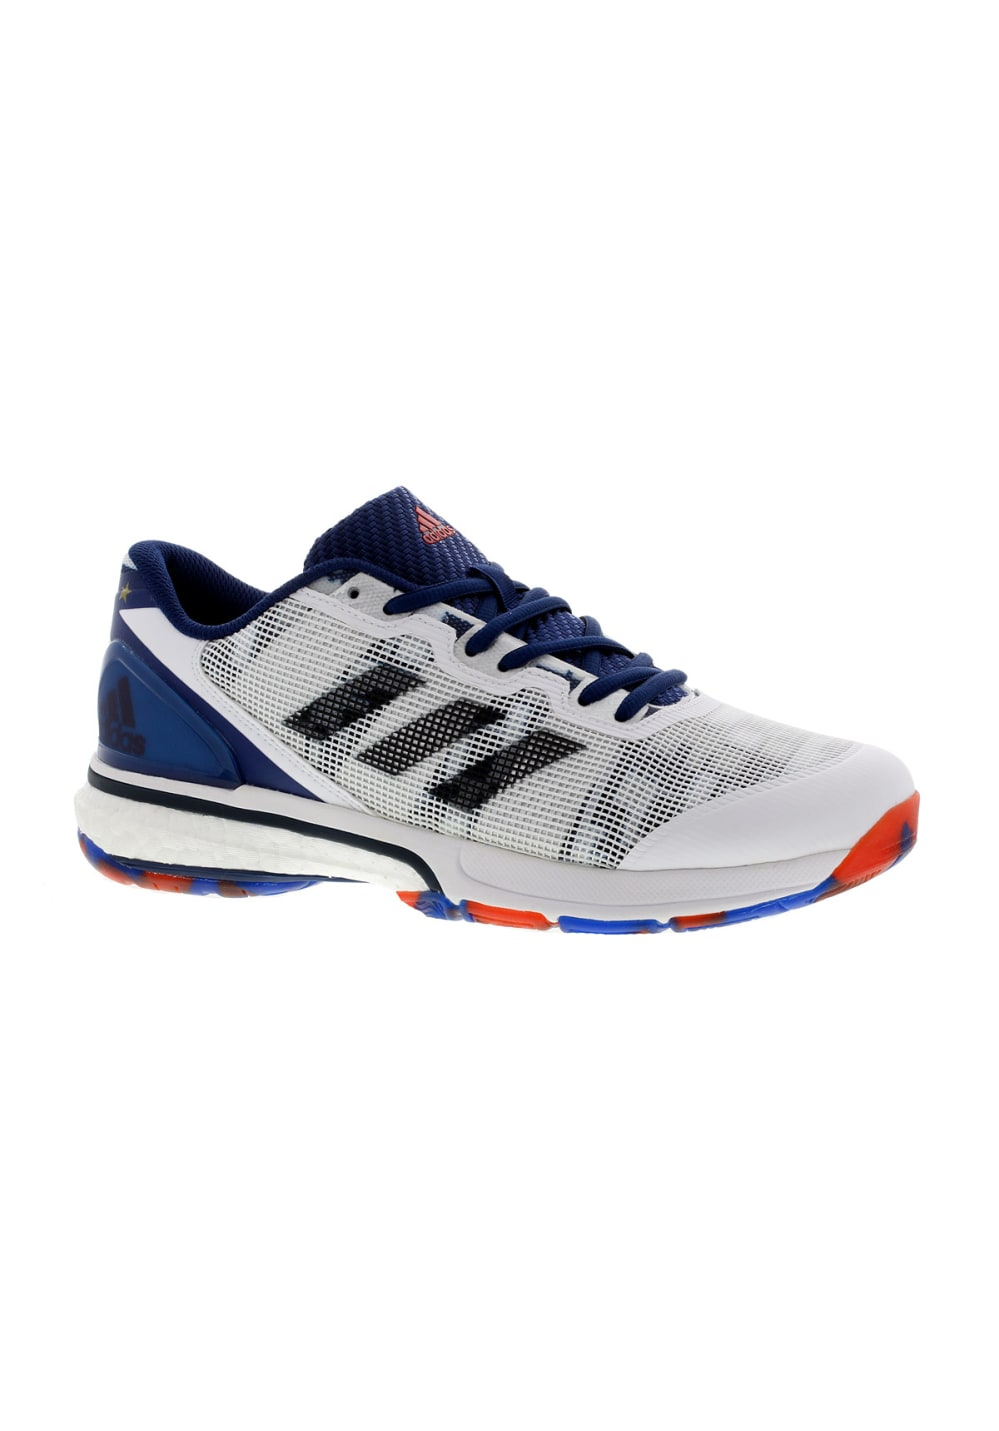 Gris Pour 20y Chaussures Adidas Stabil Homme Handball Boost iwkTZPXOu